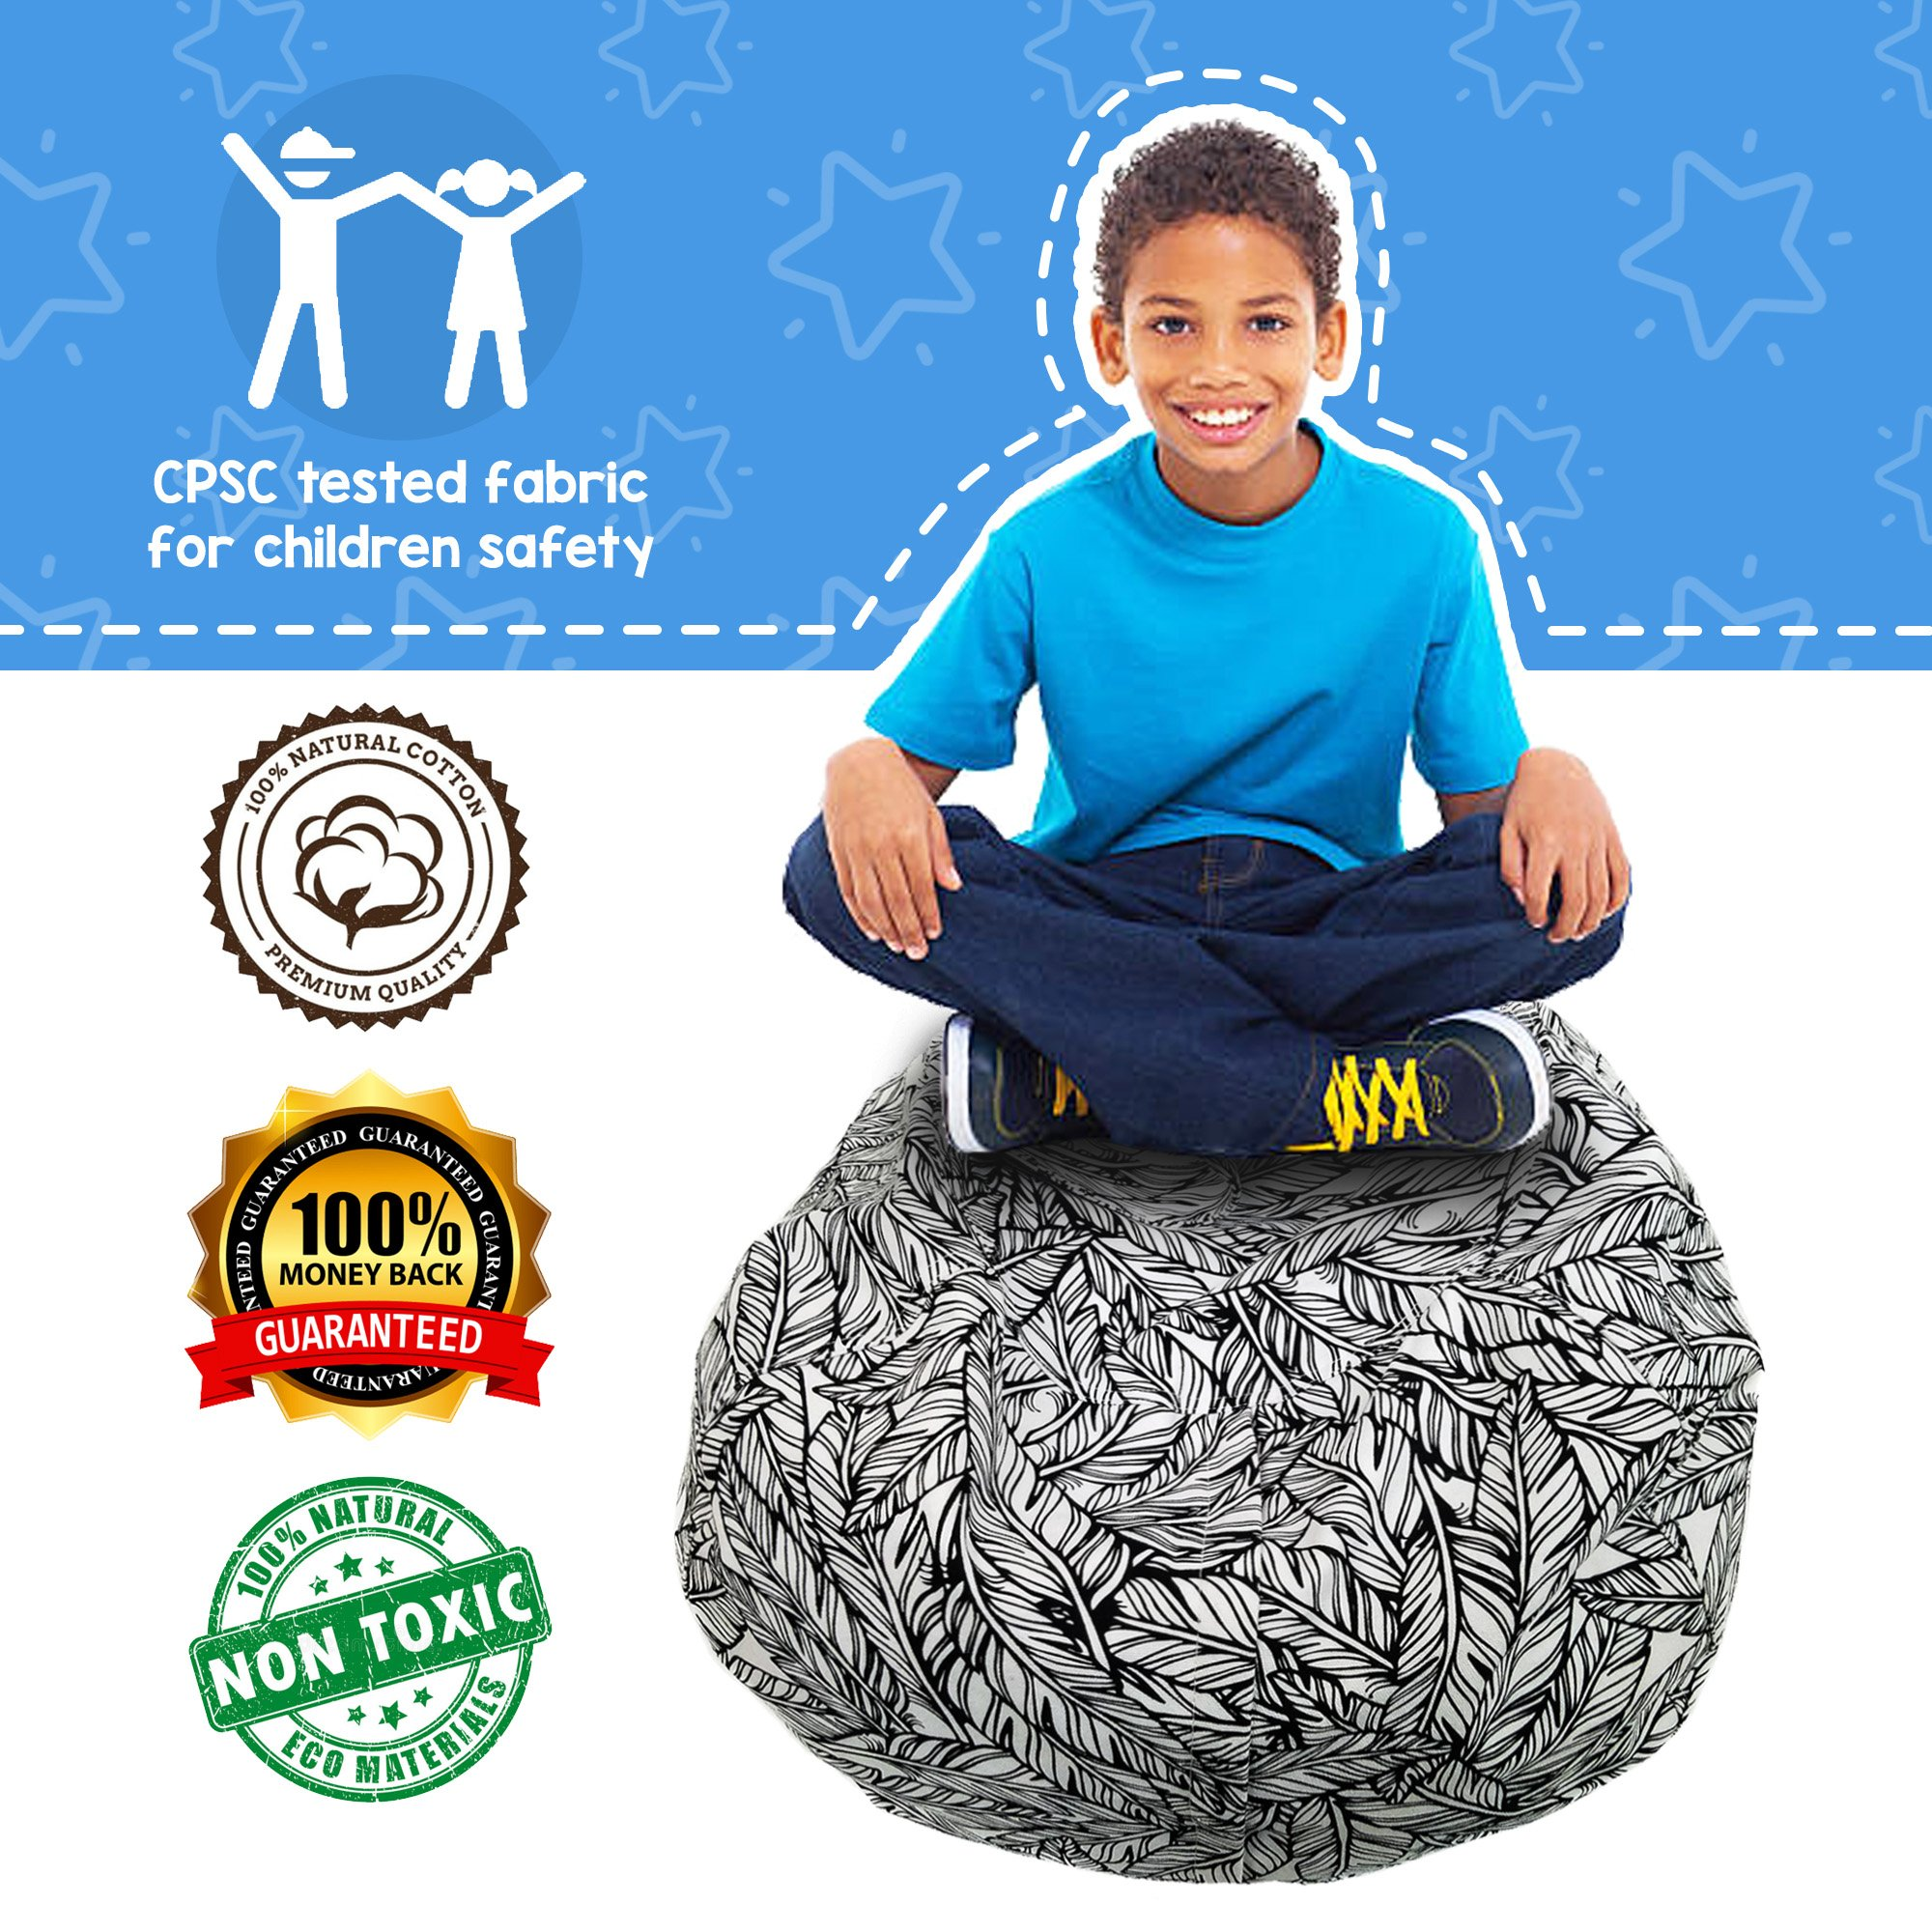 Cam & Kalleia   Bean Bag Stuffed Animal Storage Chair   Cute Toy Organizer Beanbag Containers to Create Extra Space at Home Storing Kids or Teens Plush Cushions, Soft Bed Sheets, and More!